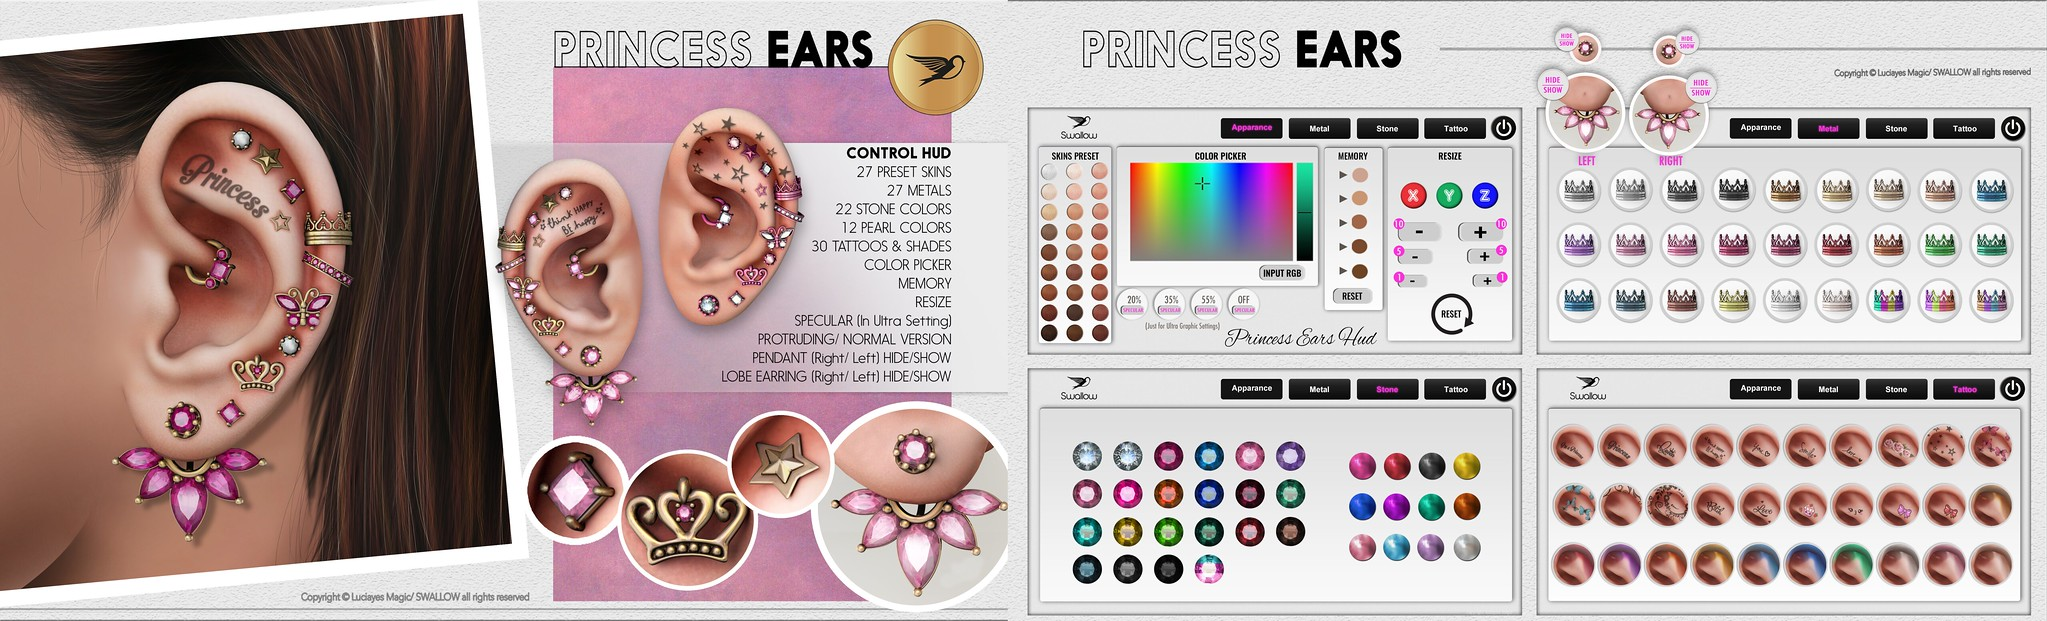 ^^Swallow^^ Princess Ears (@Kustom9 May 15th/June 10th)